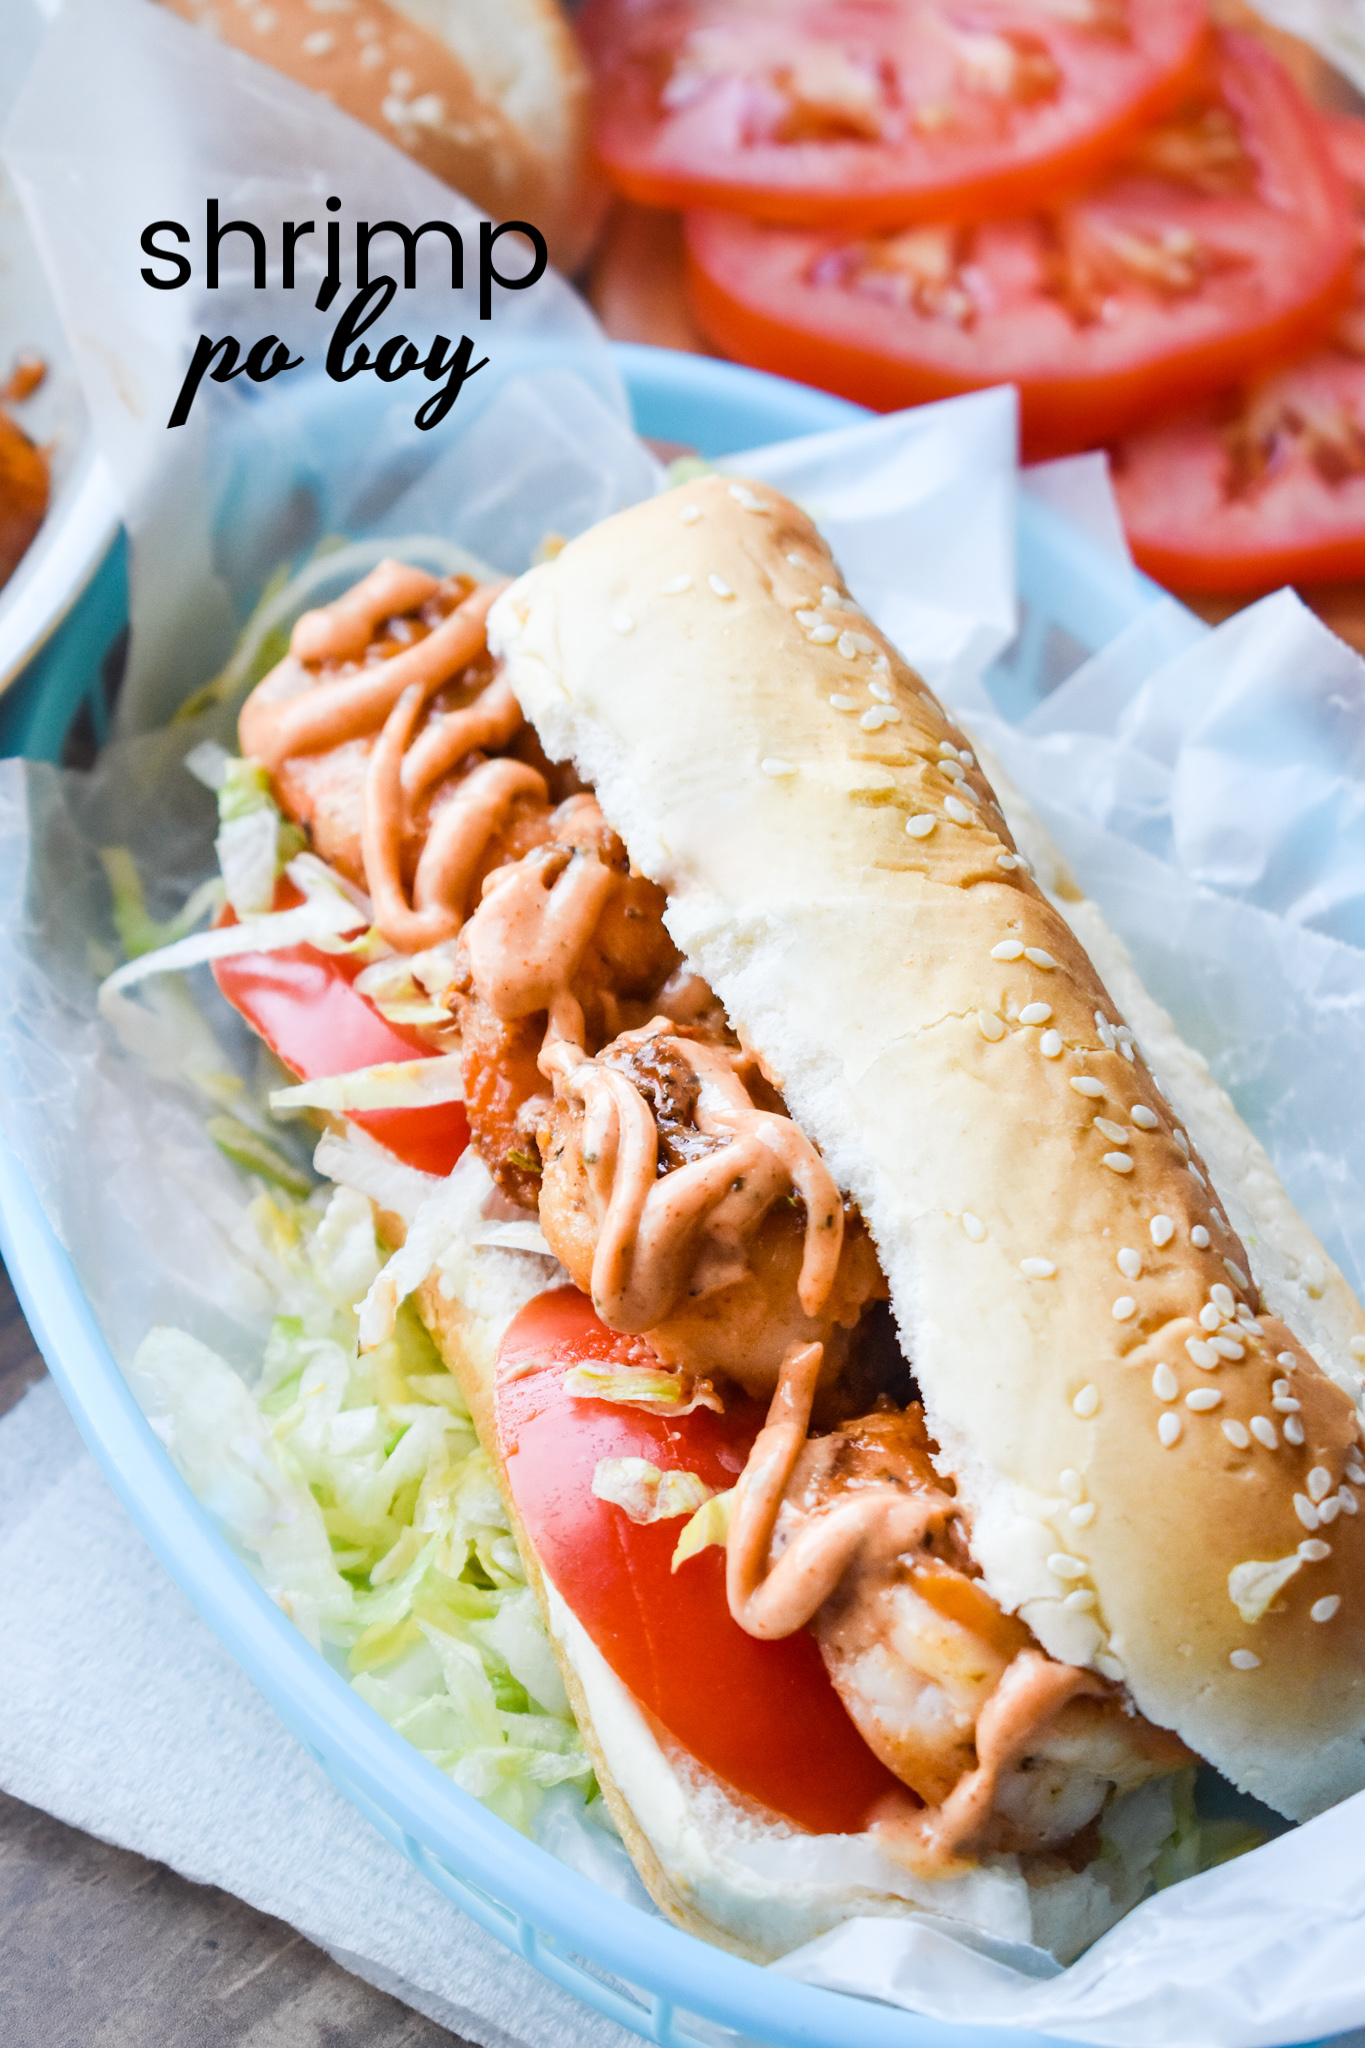 Shrimp Po' Boy Sandwich Recipe. easy, tasty, and a lighter version of the New Orleans popular sandwich recipe. It's full of bold flavor and spice! #shrimp #sandwich #recipe #poboy #creole #NOLA via @pmctunejones